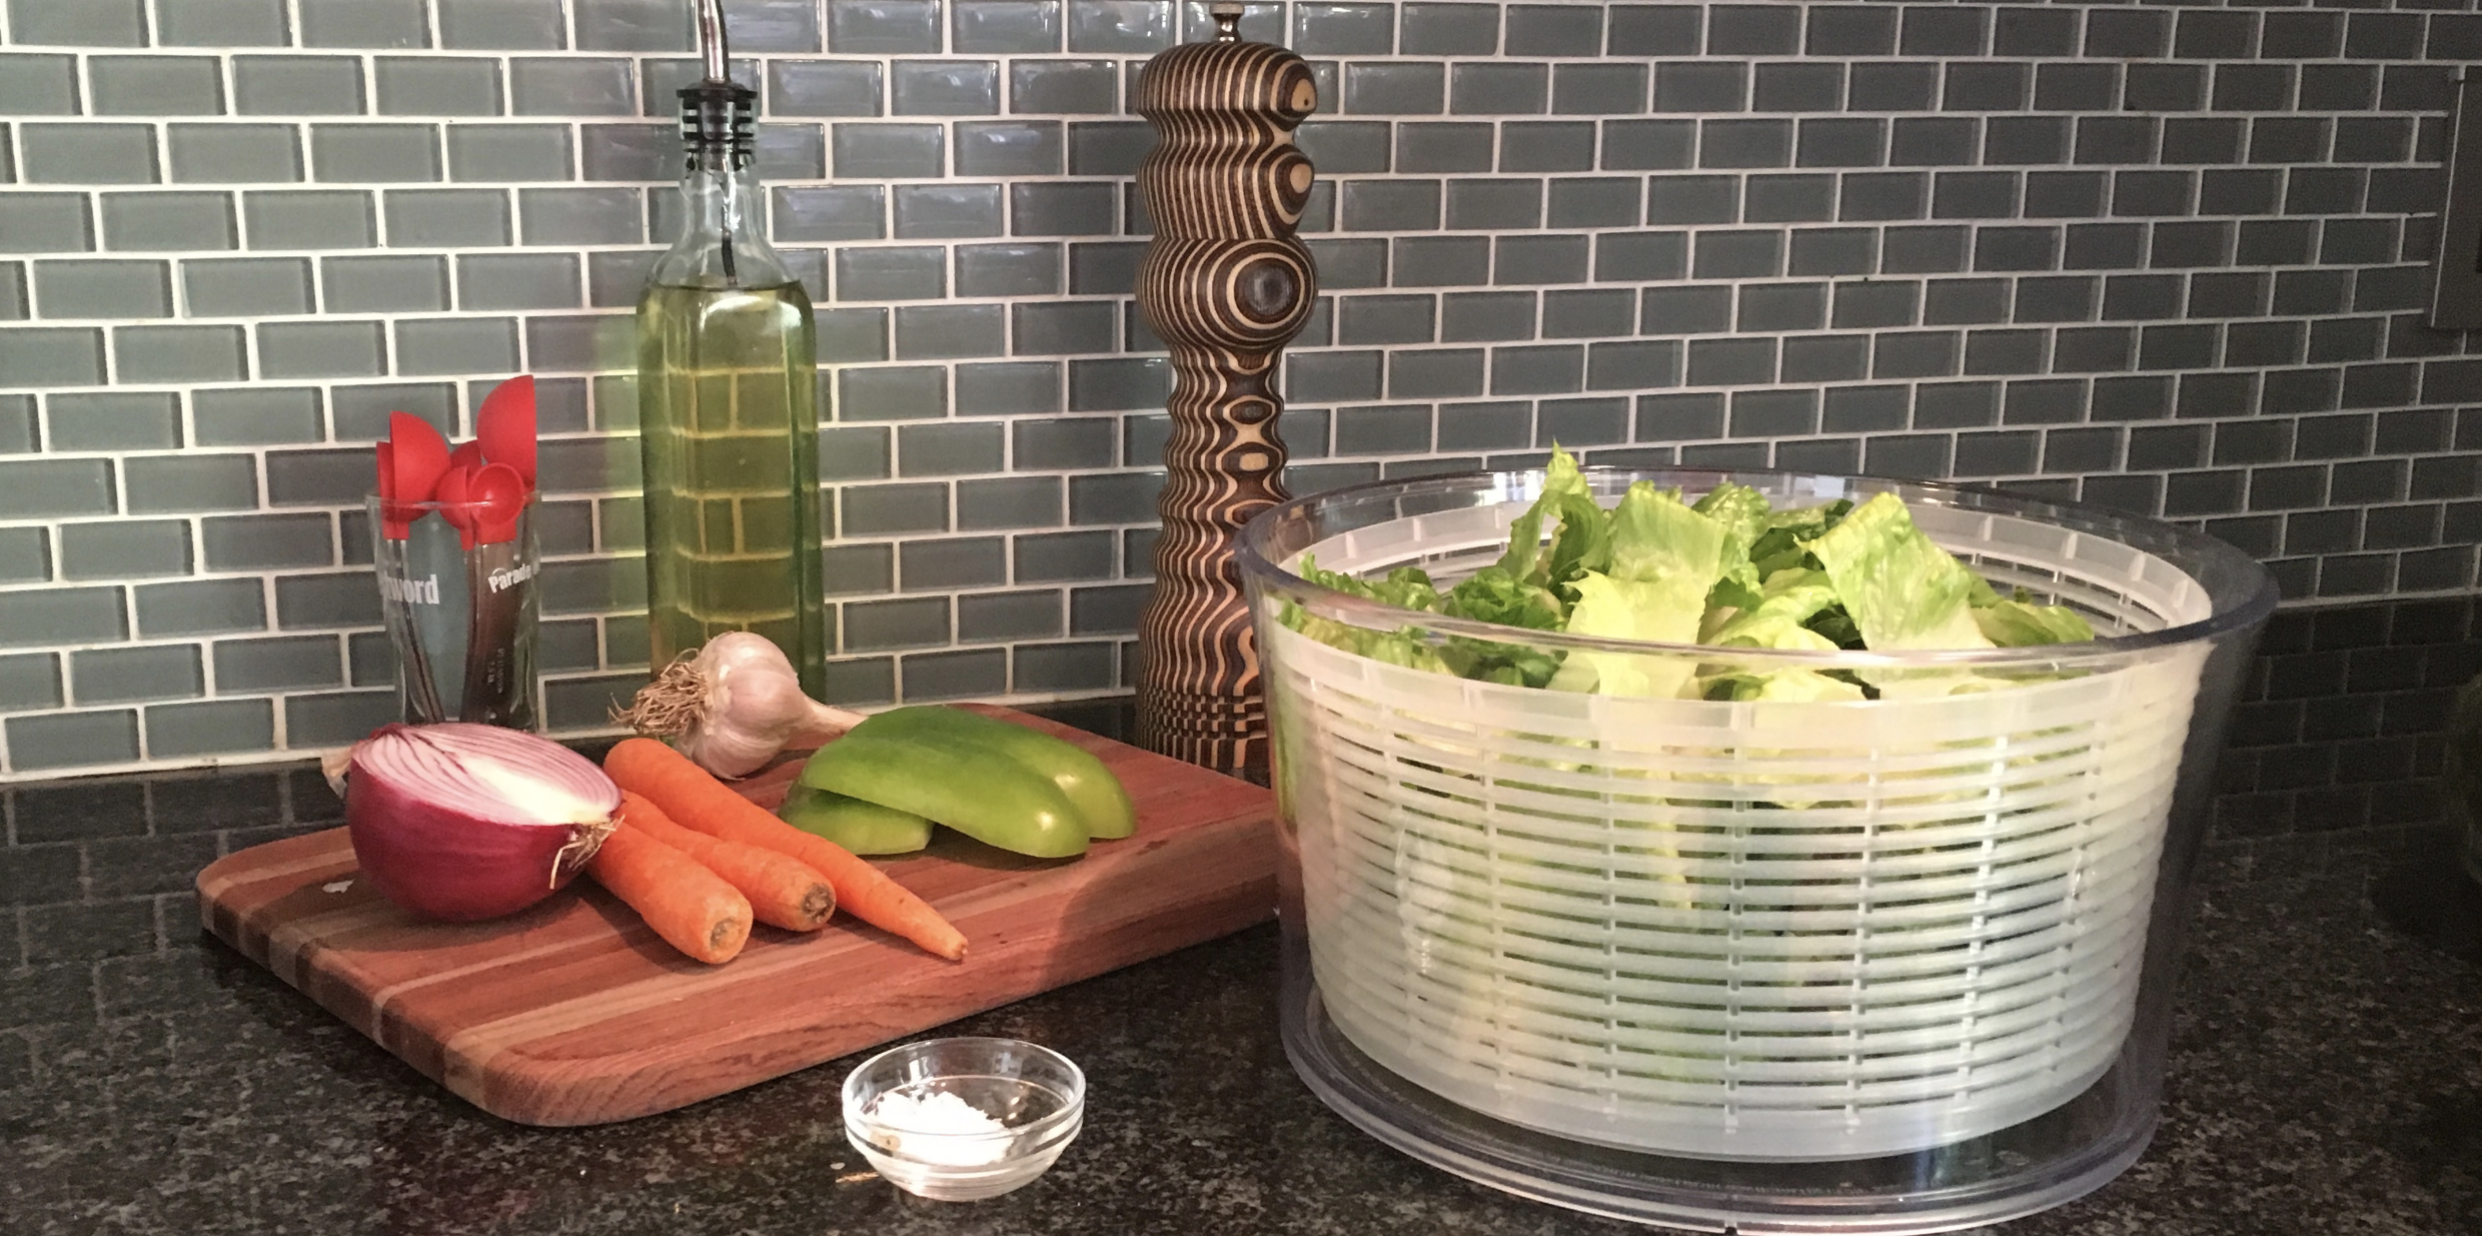 Is a salad spinner REALLY worth your money?